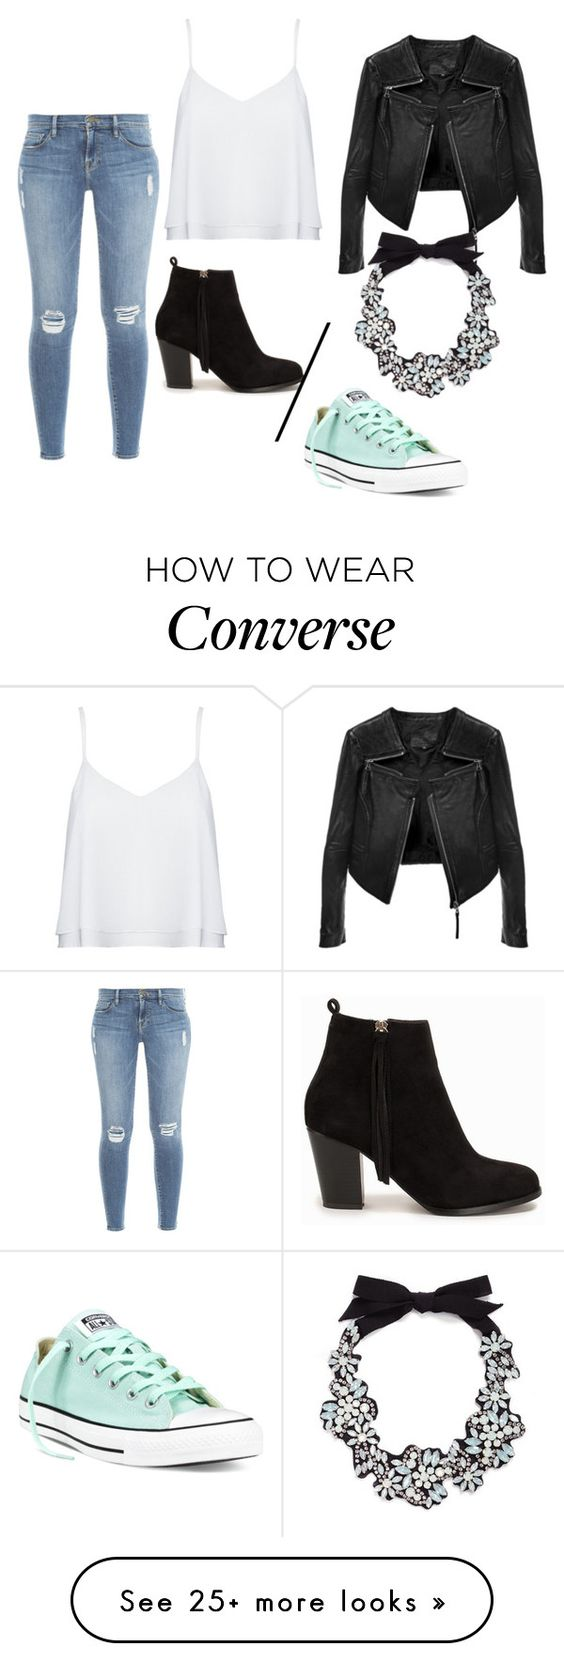 """Untitled #339"" by tanya8500 on Polyvore featuring Alice + Olivia, Linea Pelle, Frame Denim, J.Crew, Nly Shoes and Converse"